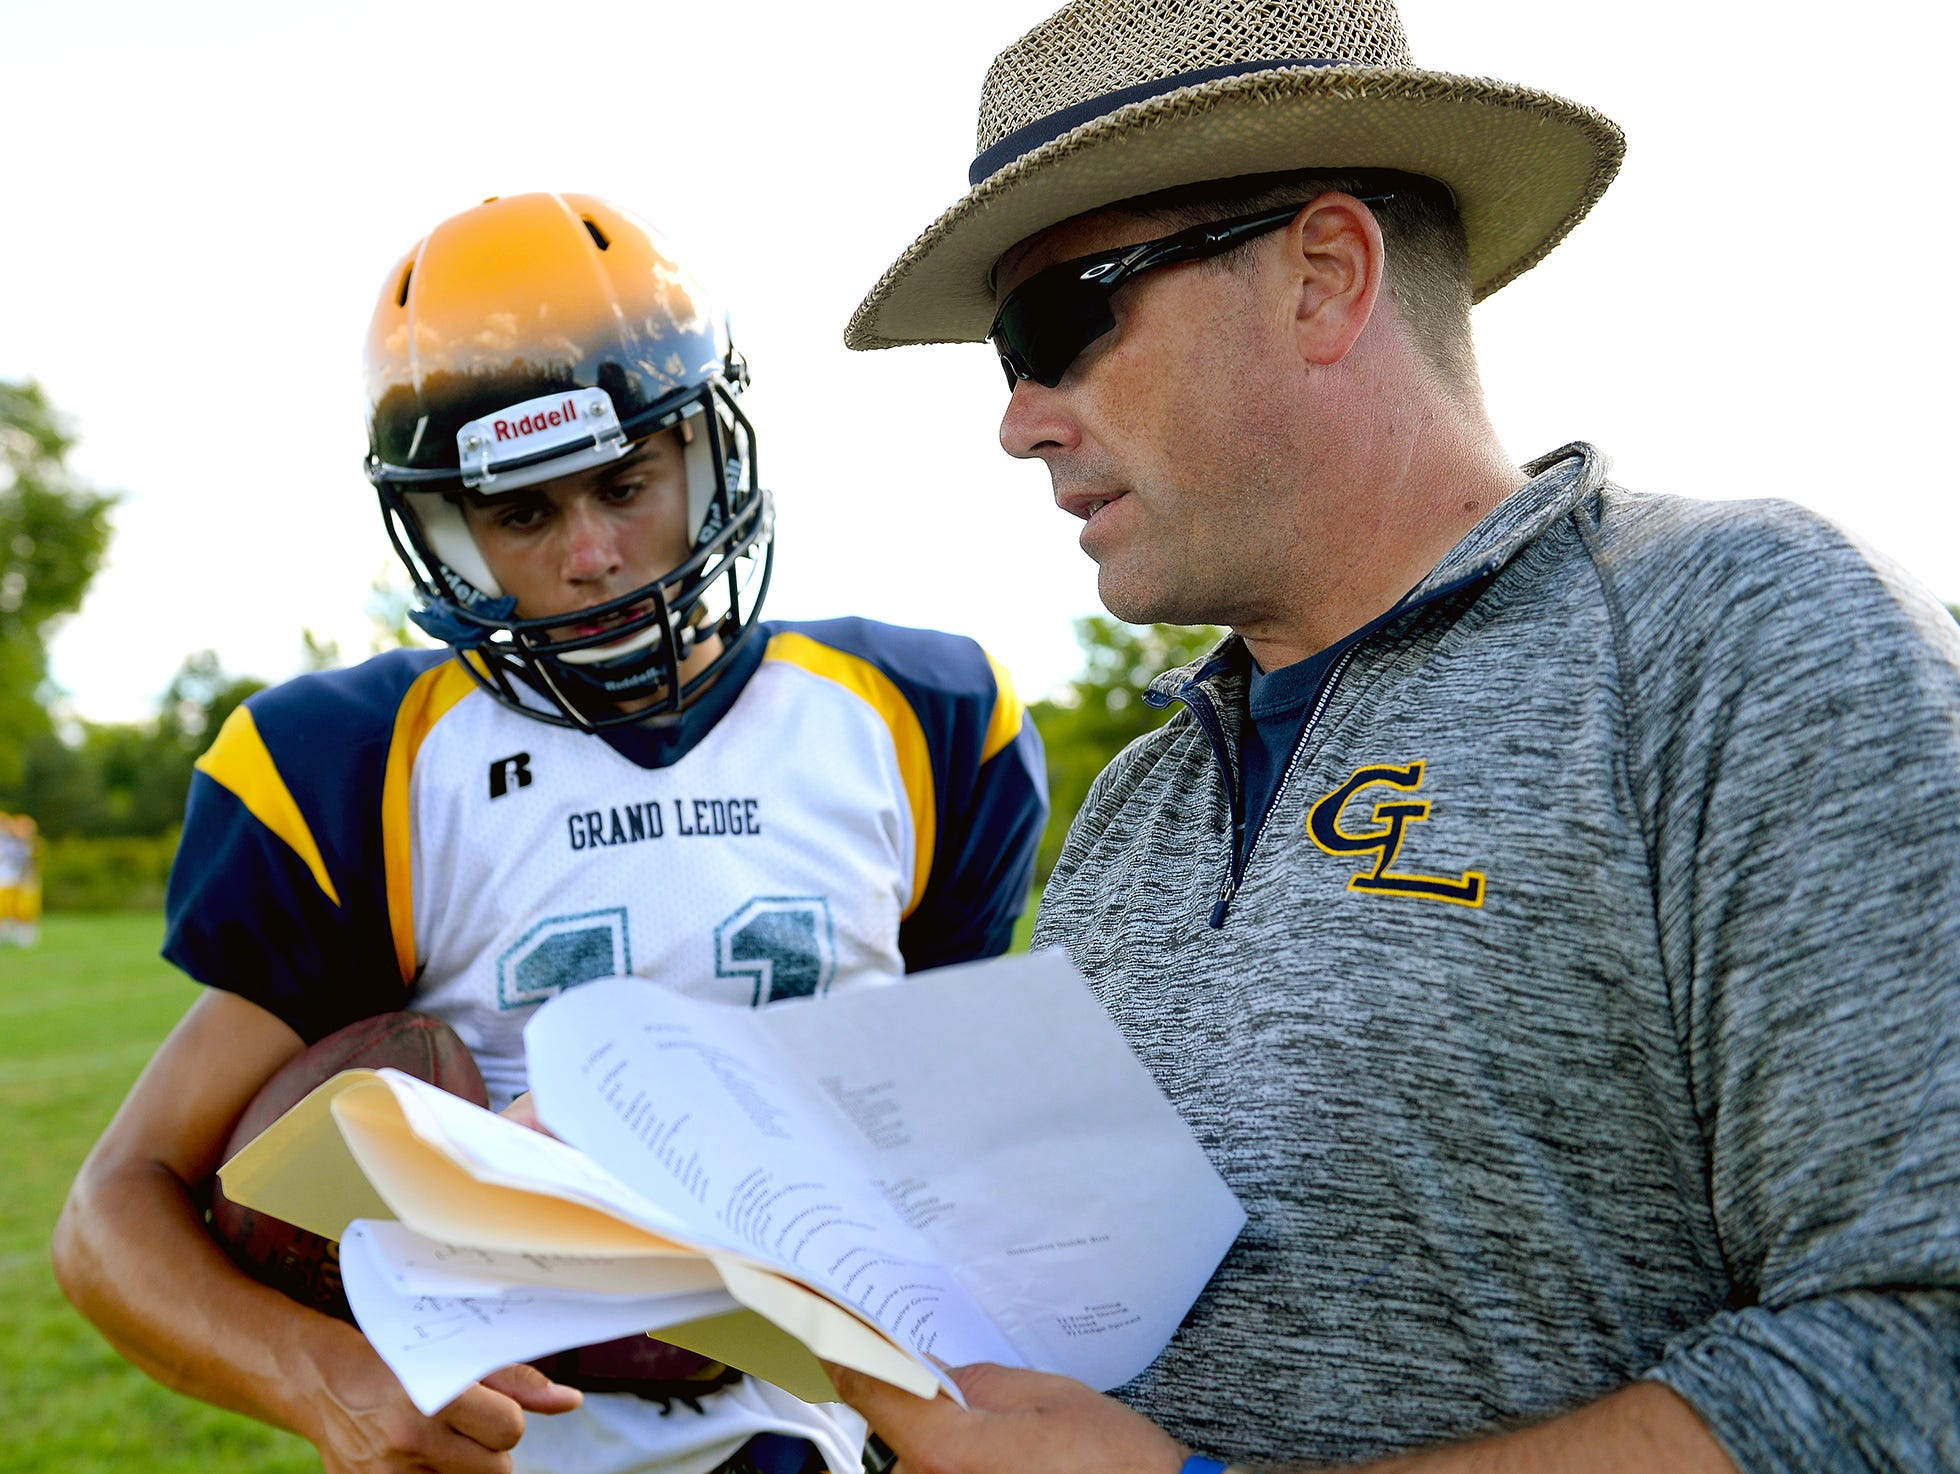 Grand Ledge quarterback back Nolan Bird and his father, and head coach Matt Bird, go over passing routes and plays during position drills at practice Monday. Nolan is entering his second season as his father's starting quarterback.